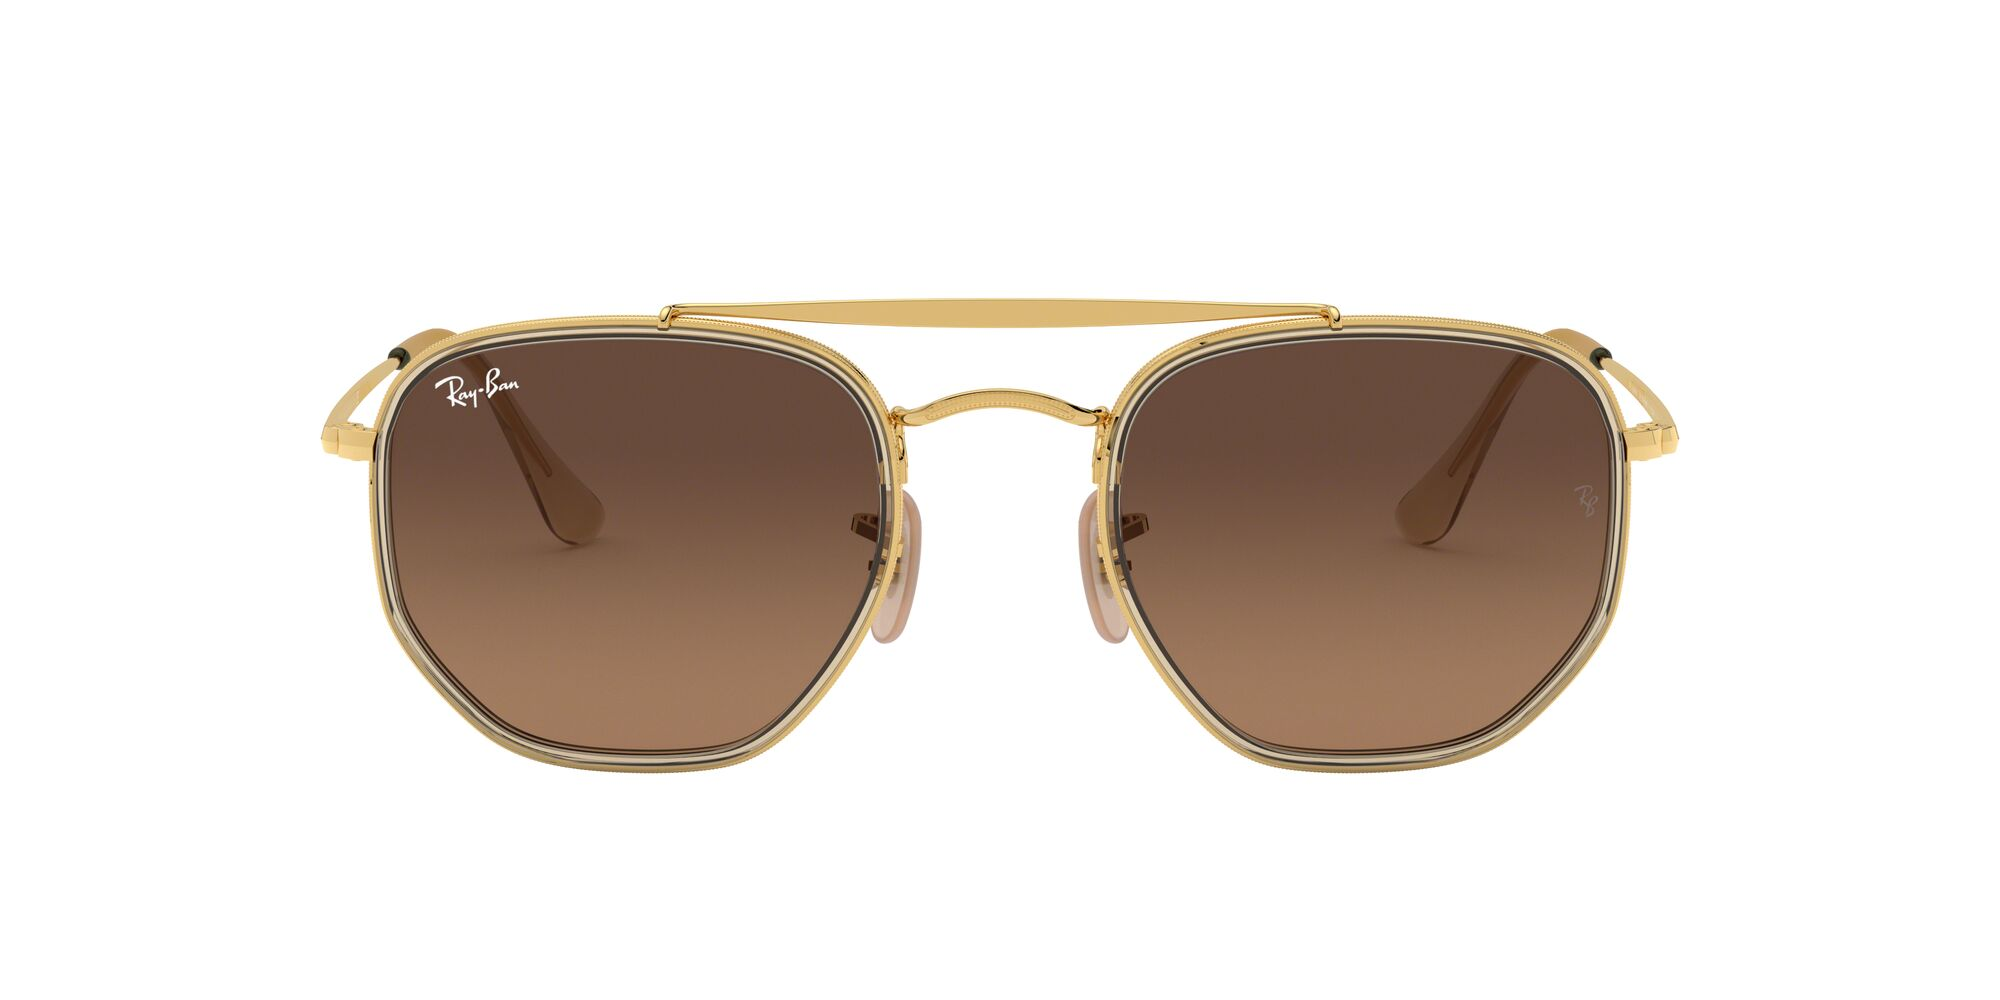 Front Ray-Ban Ray-Ban 0RB3648M 912443 52/23 Goud/Bruin